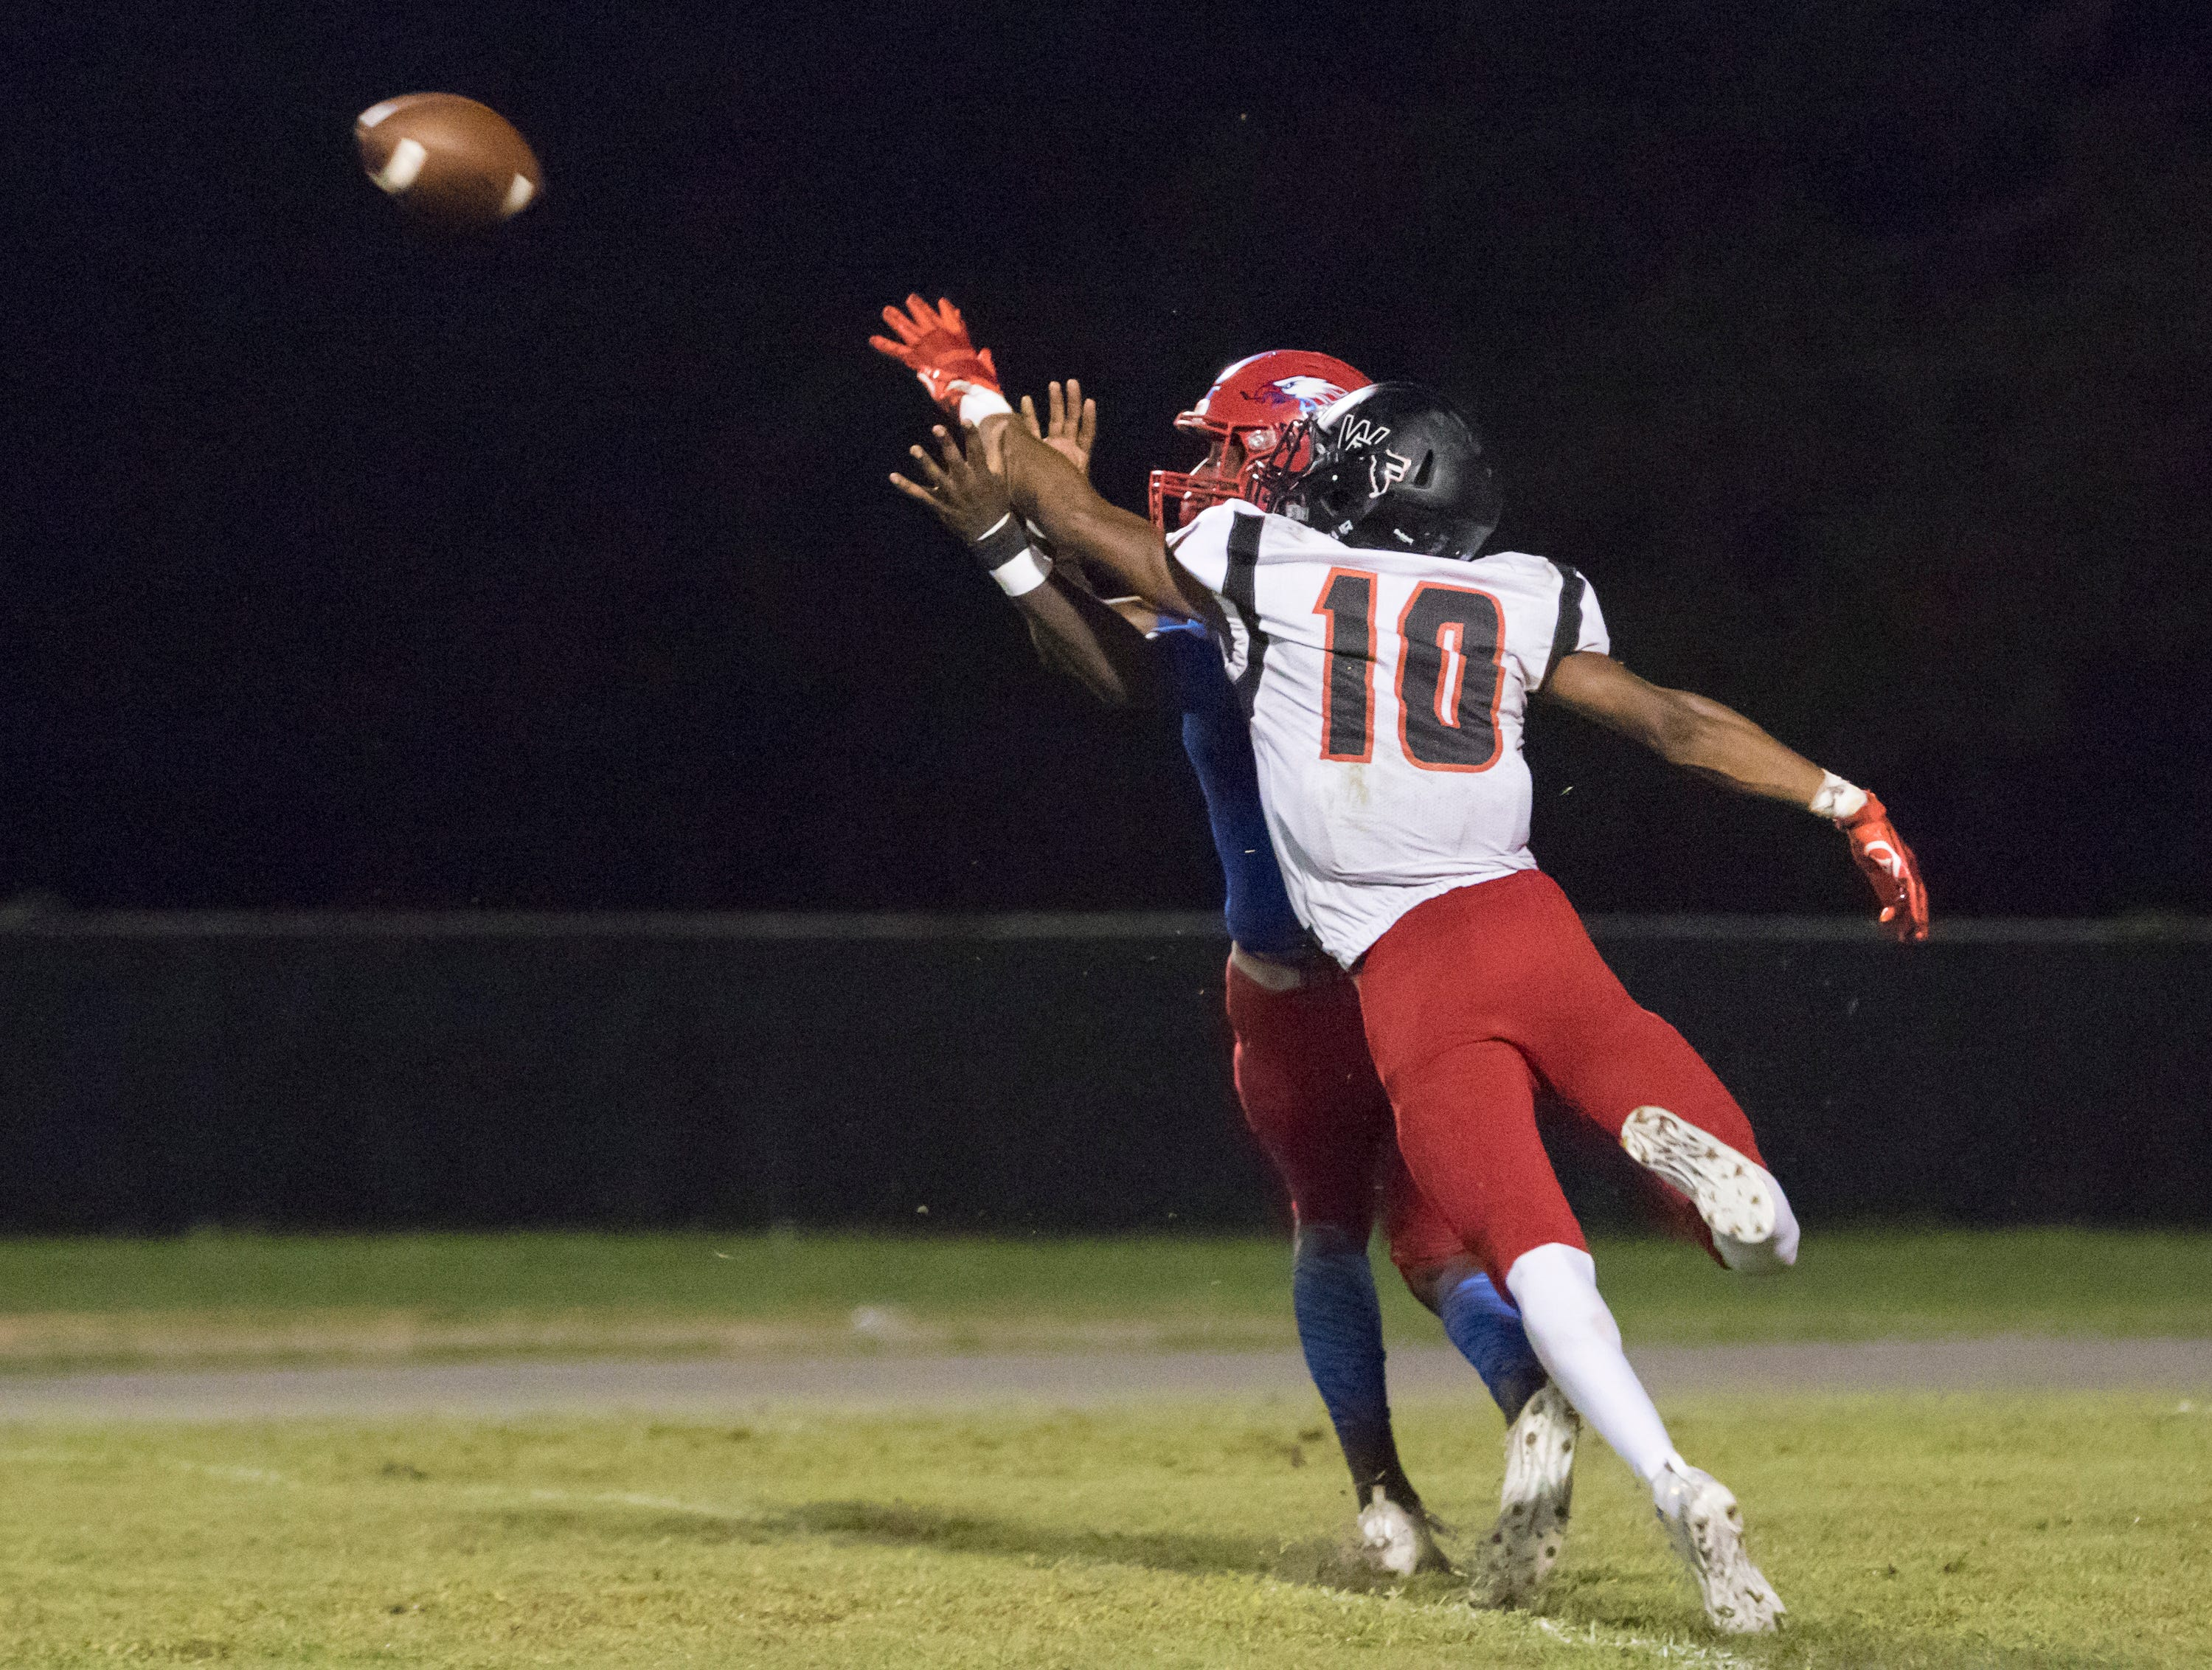 Donte Thompson (10) breaks up the pass to Vontarious Hill (4) during the West Florida vs Pine Forest football game at Pine Forest High School in Pensacola on Friday, October 5, 2018.